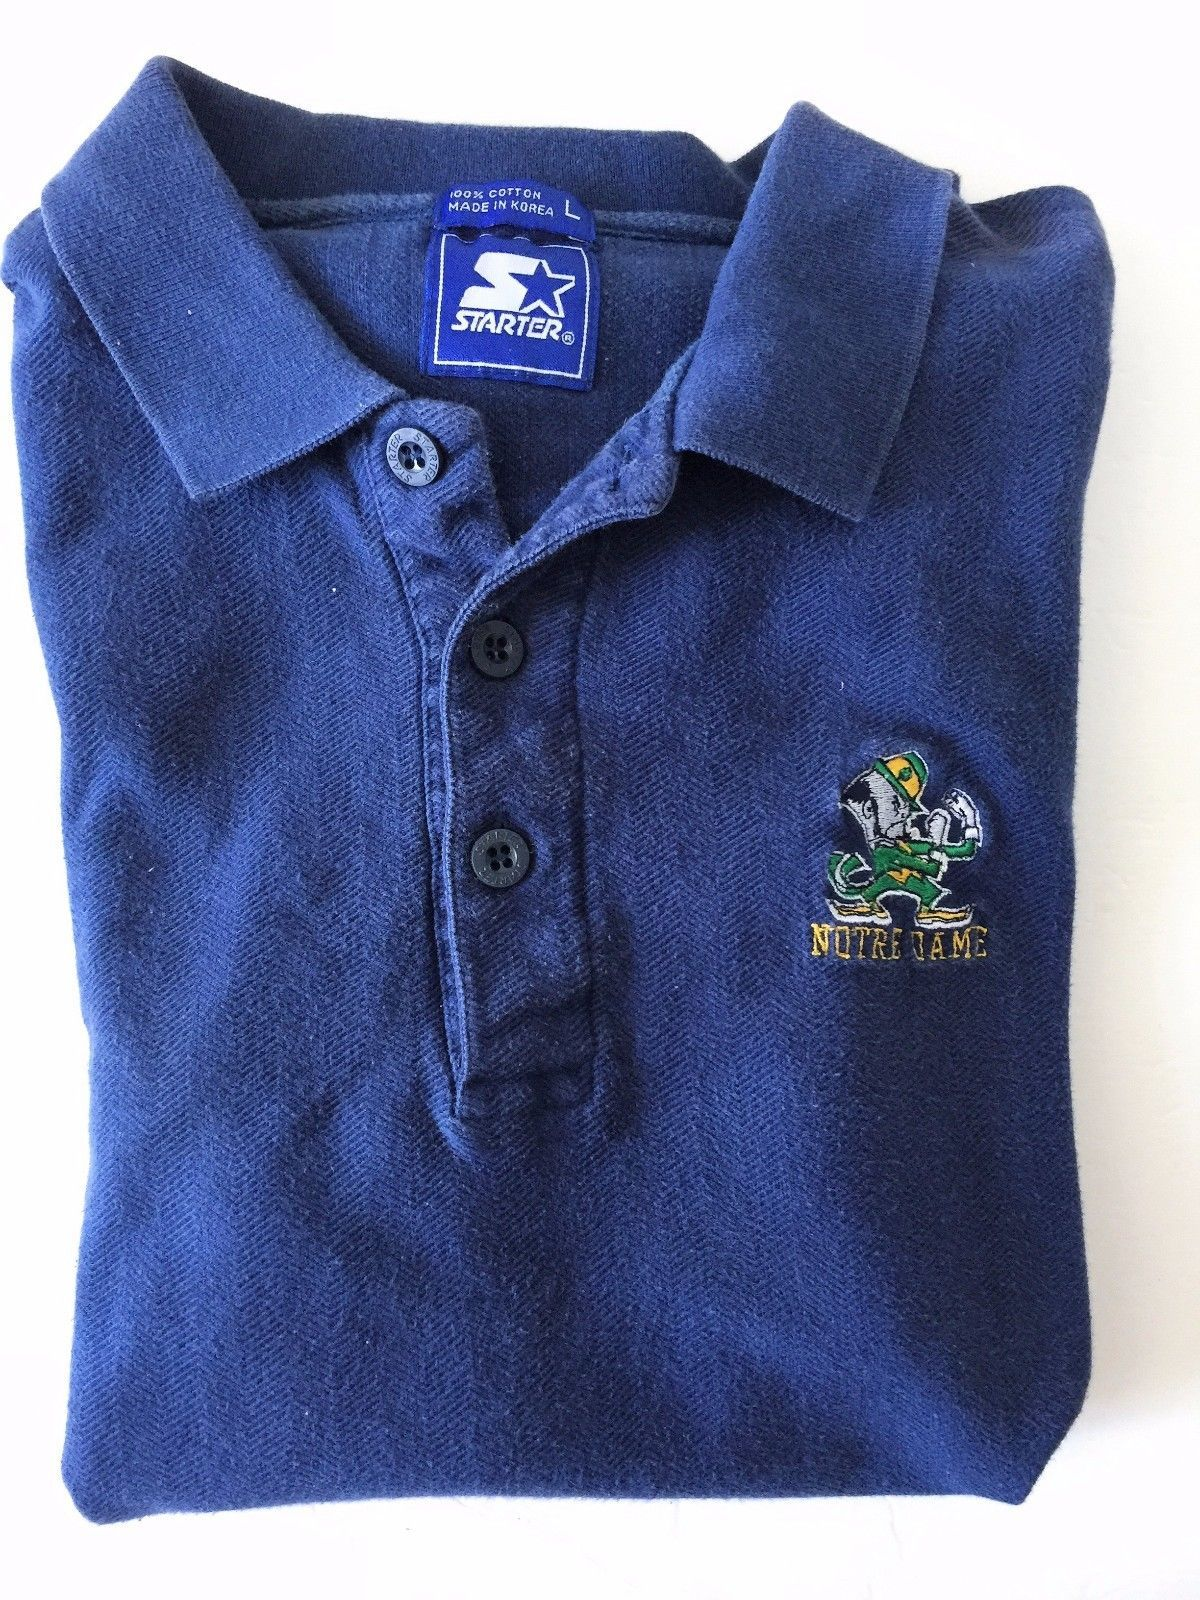 VTG Starter Mens Navy Blue Notre Dame Fighting Irish Polo Shirt Top Sz Large L